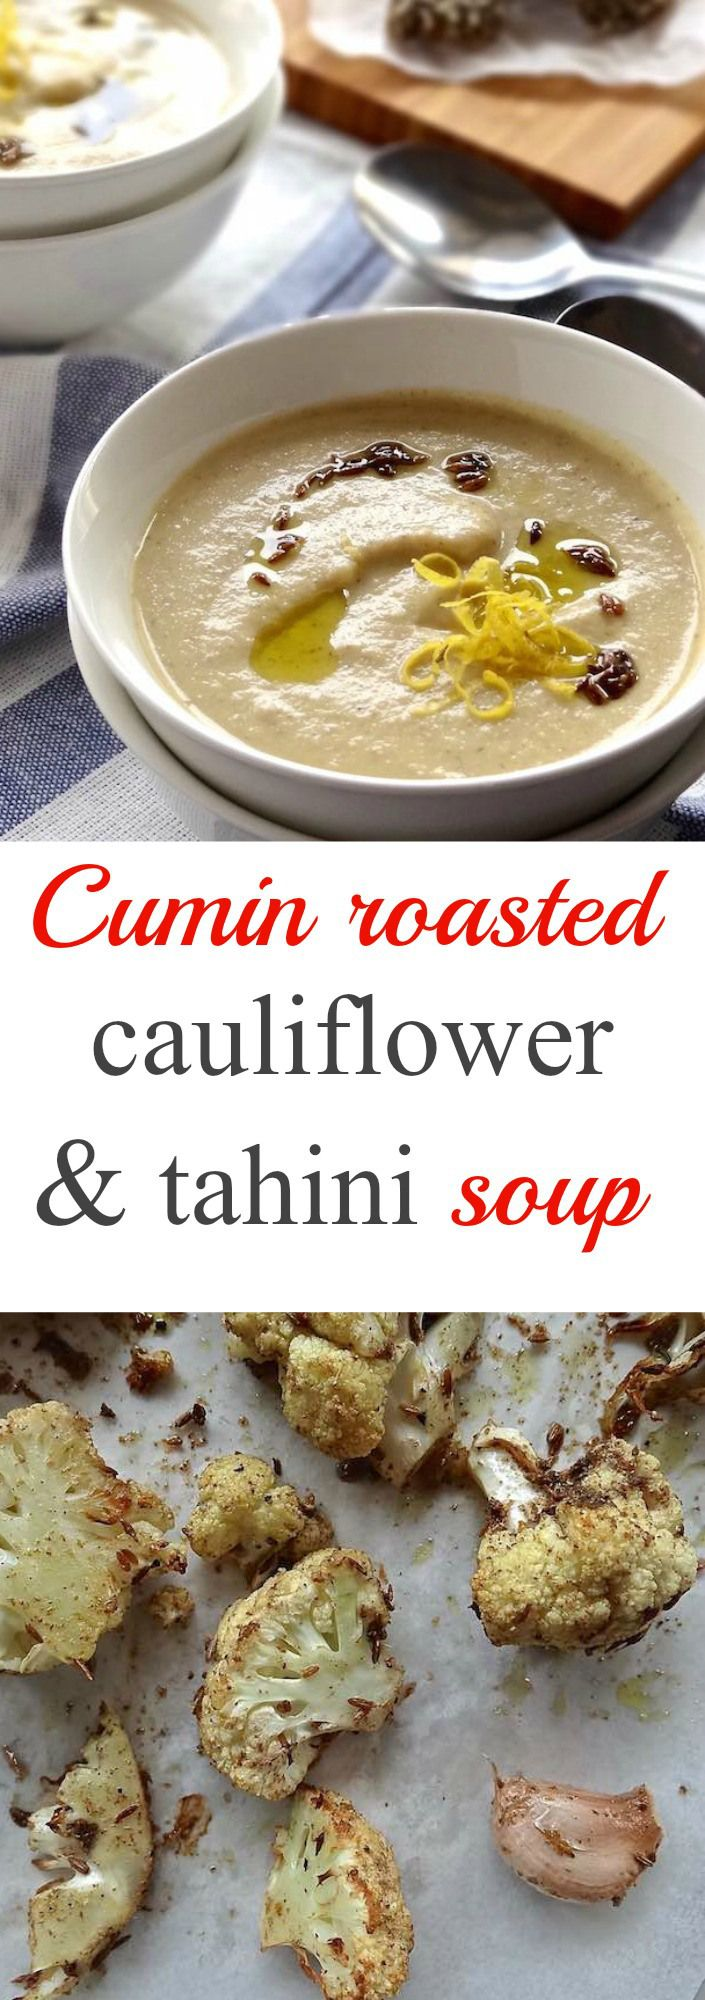 Cumin roasted cauliflower & tahini soup | Plus Ate Six ...